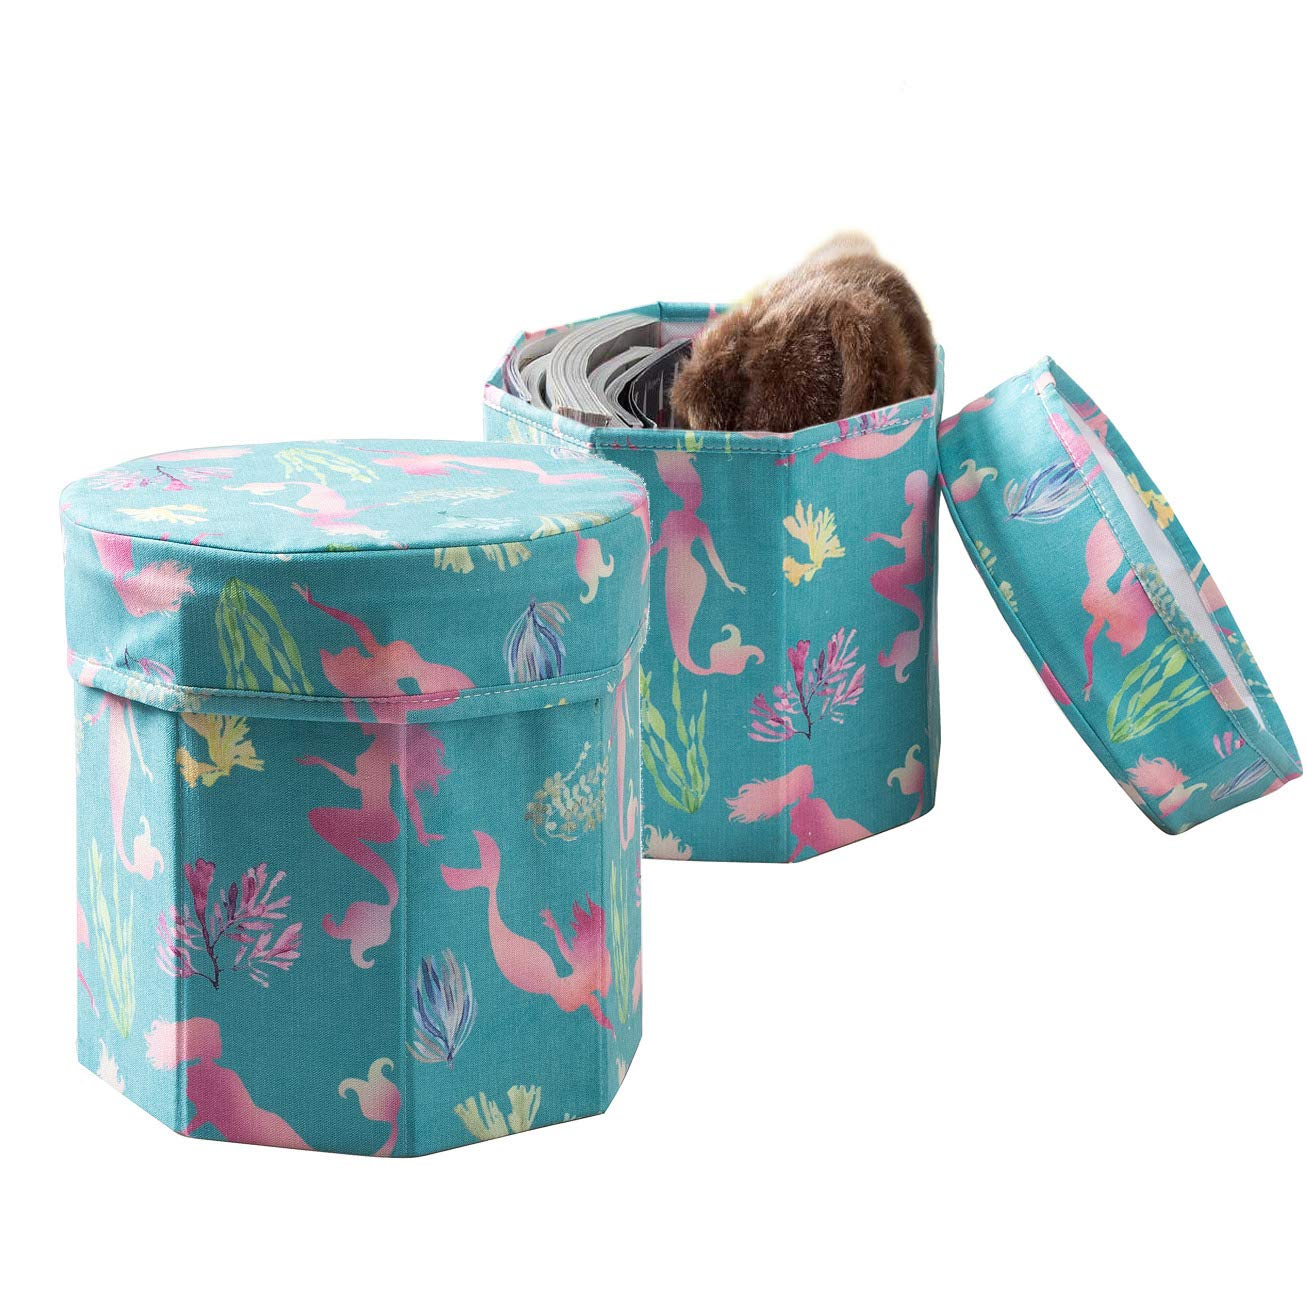 TINA S HOME 2 Pack Sturdy Kids Ottoman Storage Organize for Toy Book Storage – Mint Green – 12 inches – Mermaids